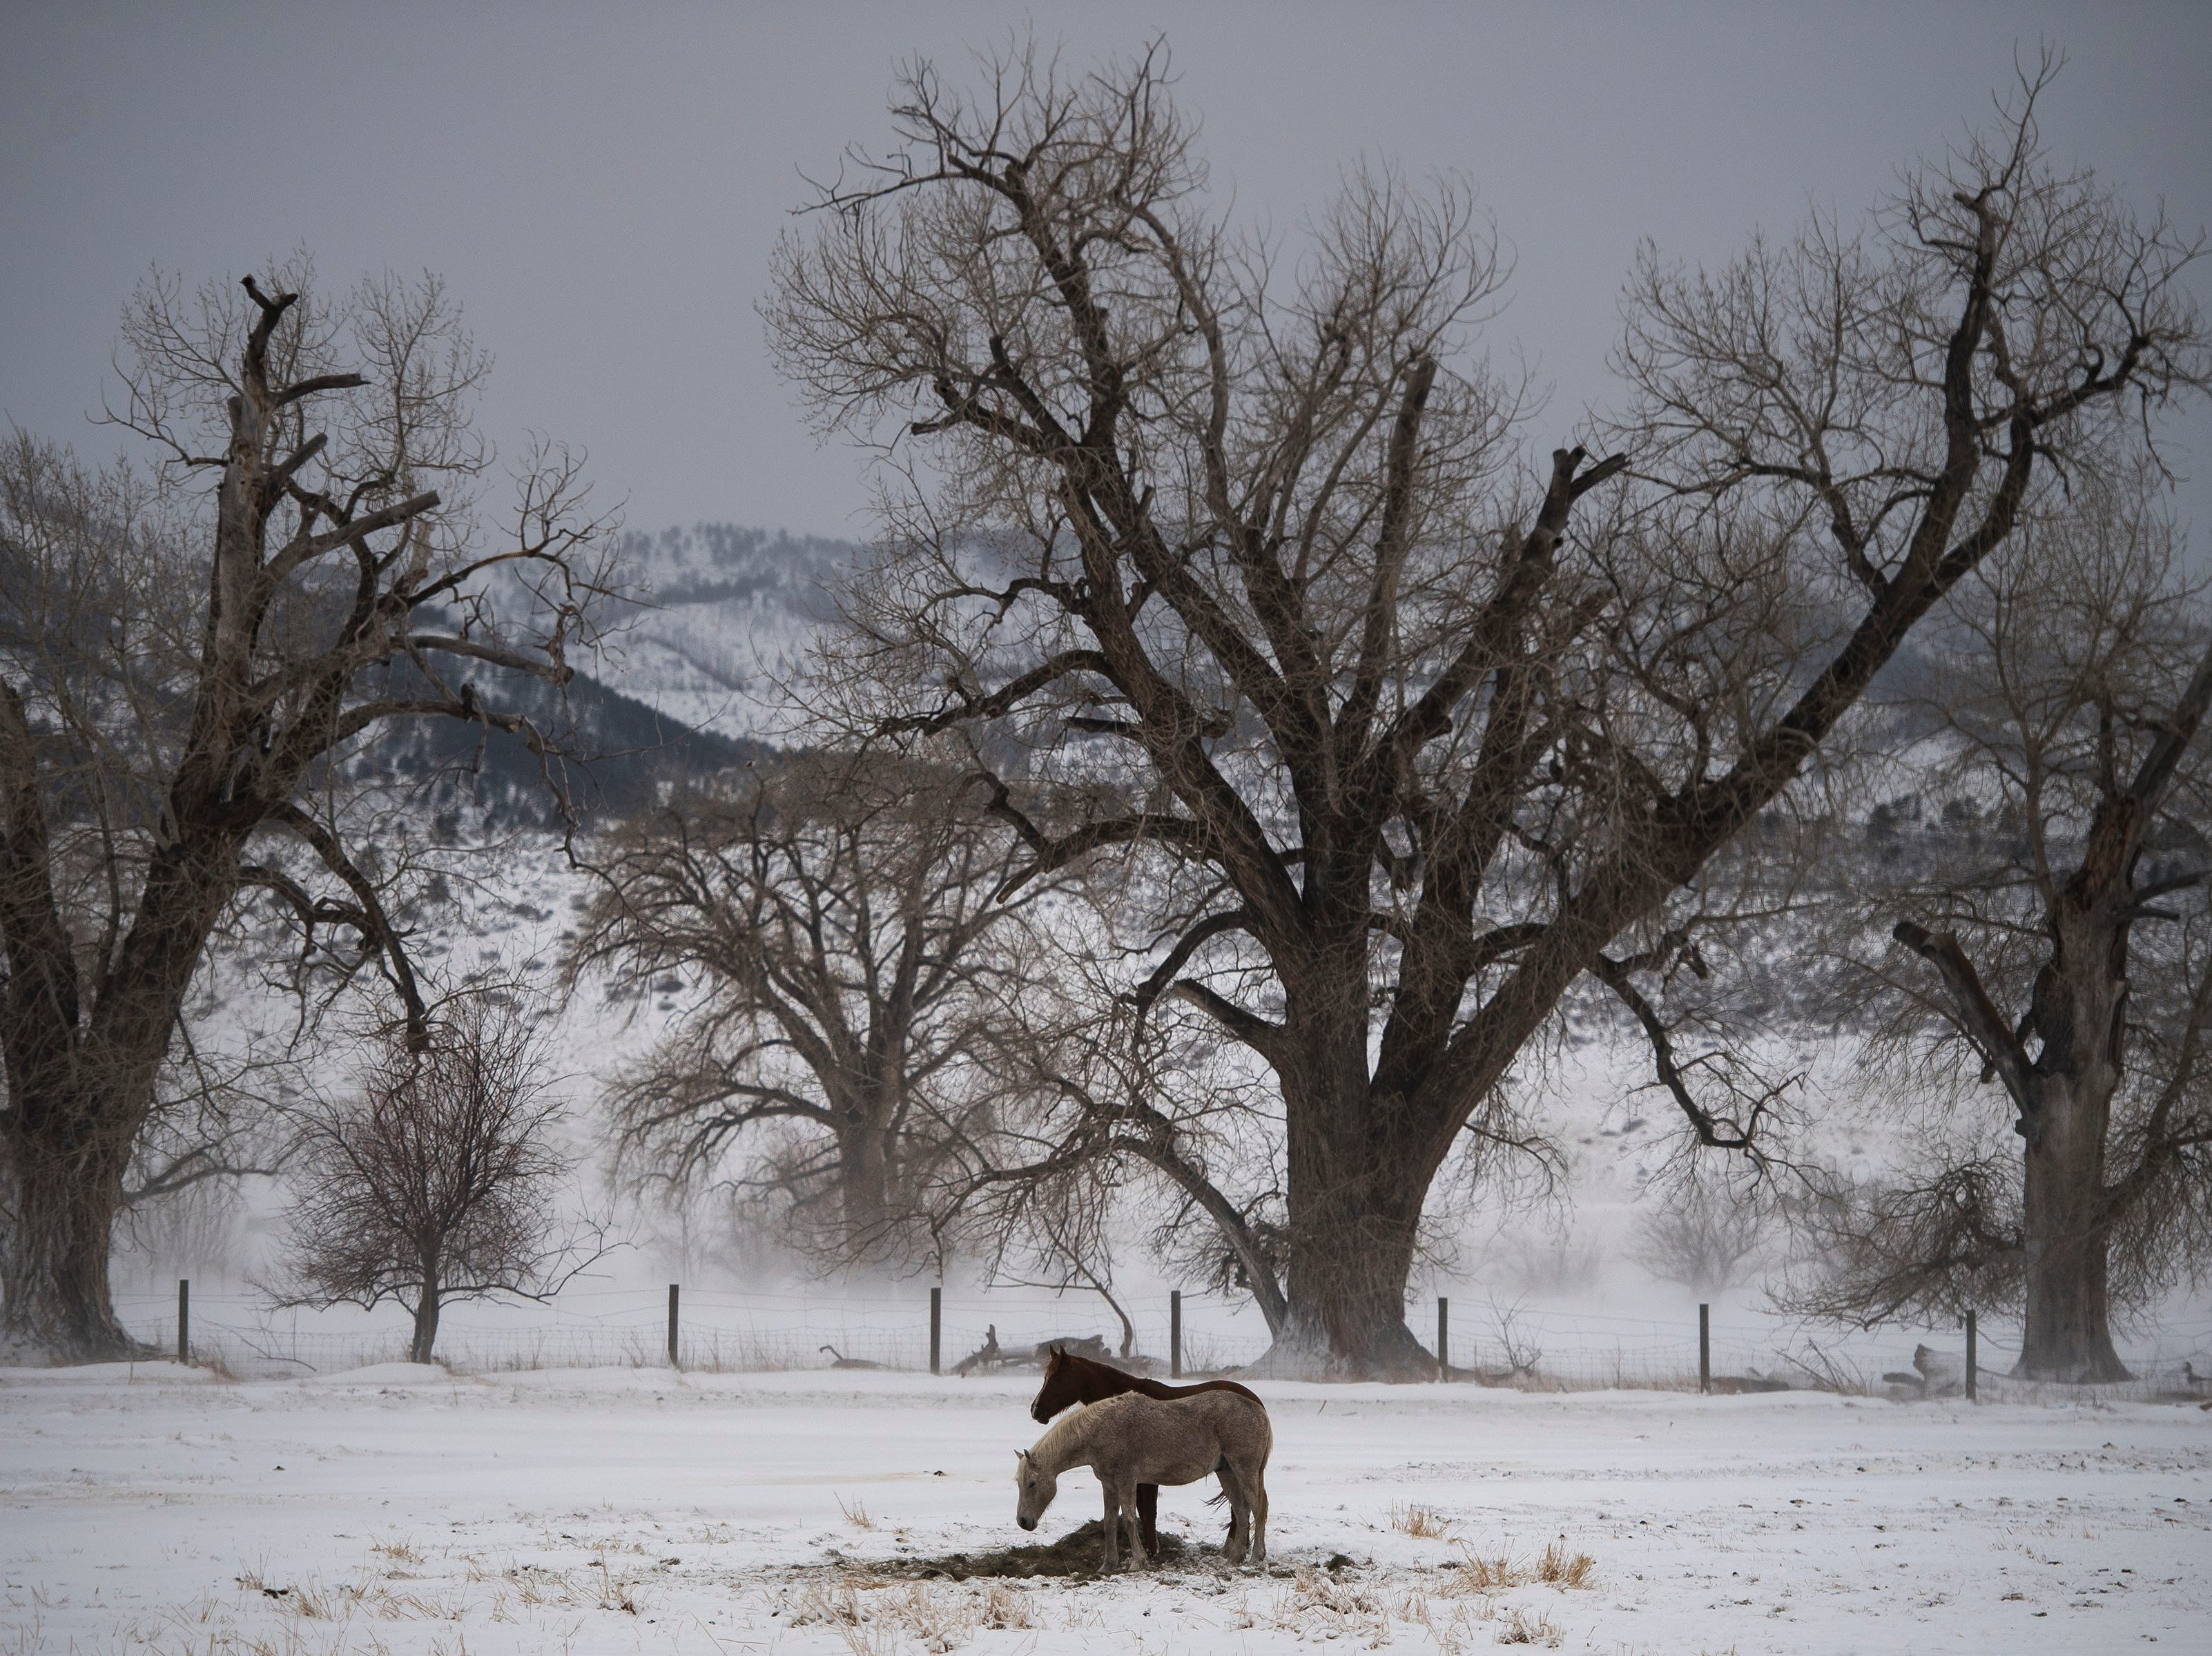 Horses graze North of Laporte during a break in a snowstorm on Wednesday, March 13, 2019, in Fort Collins, Colo.